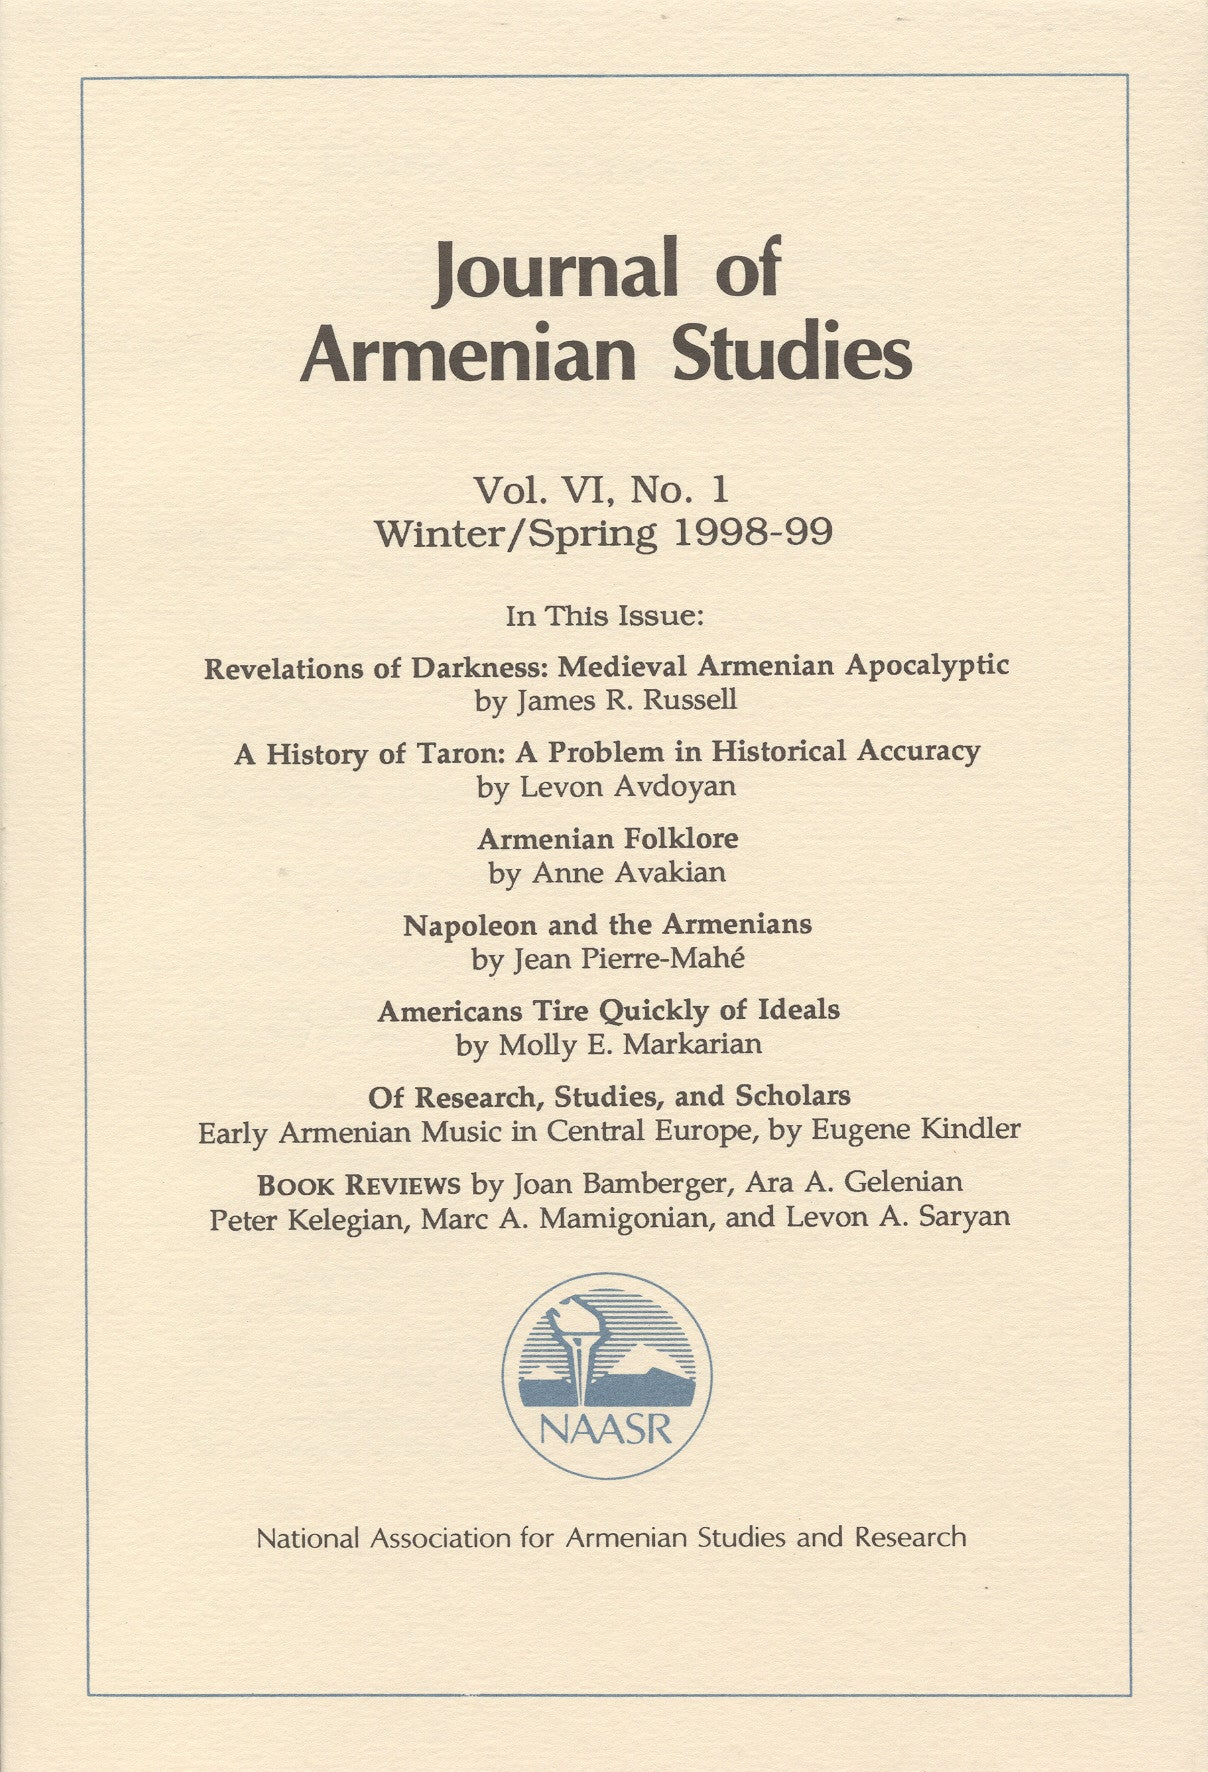 JOURNAL OF ARMENIAN STUDIES: Volume VI, Number 1: Winter/Spring 1998-1999